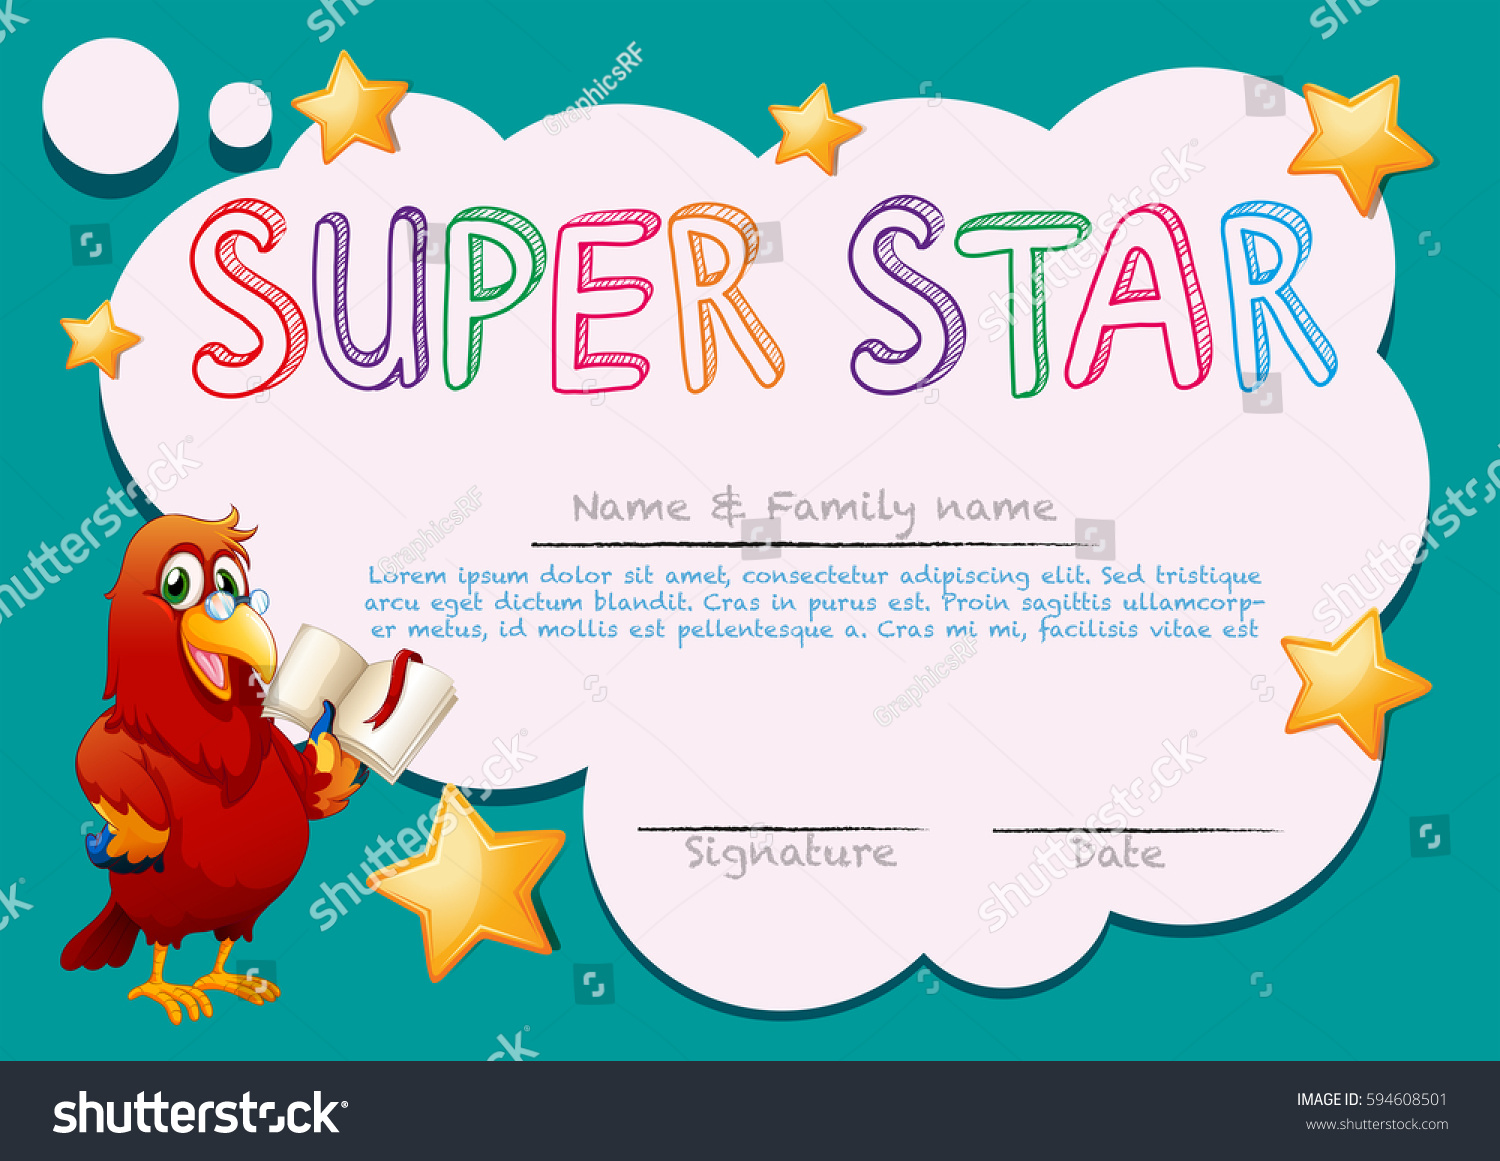 Certificate template super star illustration stock vector certificate template for super star illustration 1betcityfo Gallery